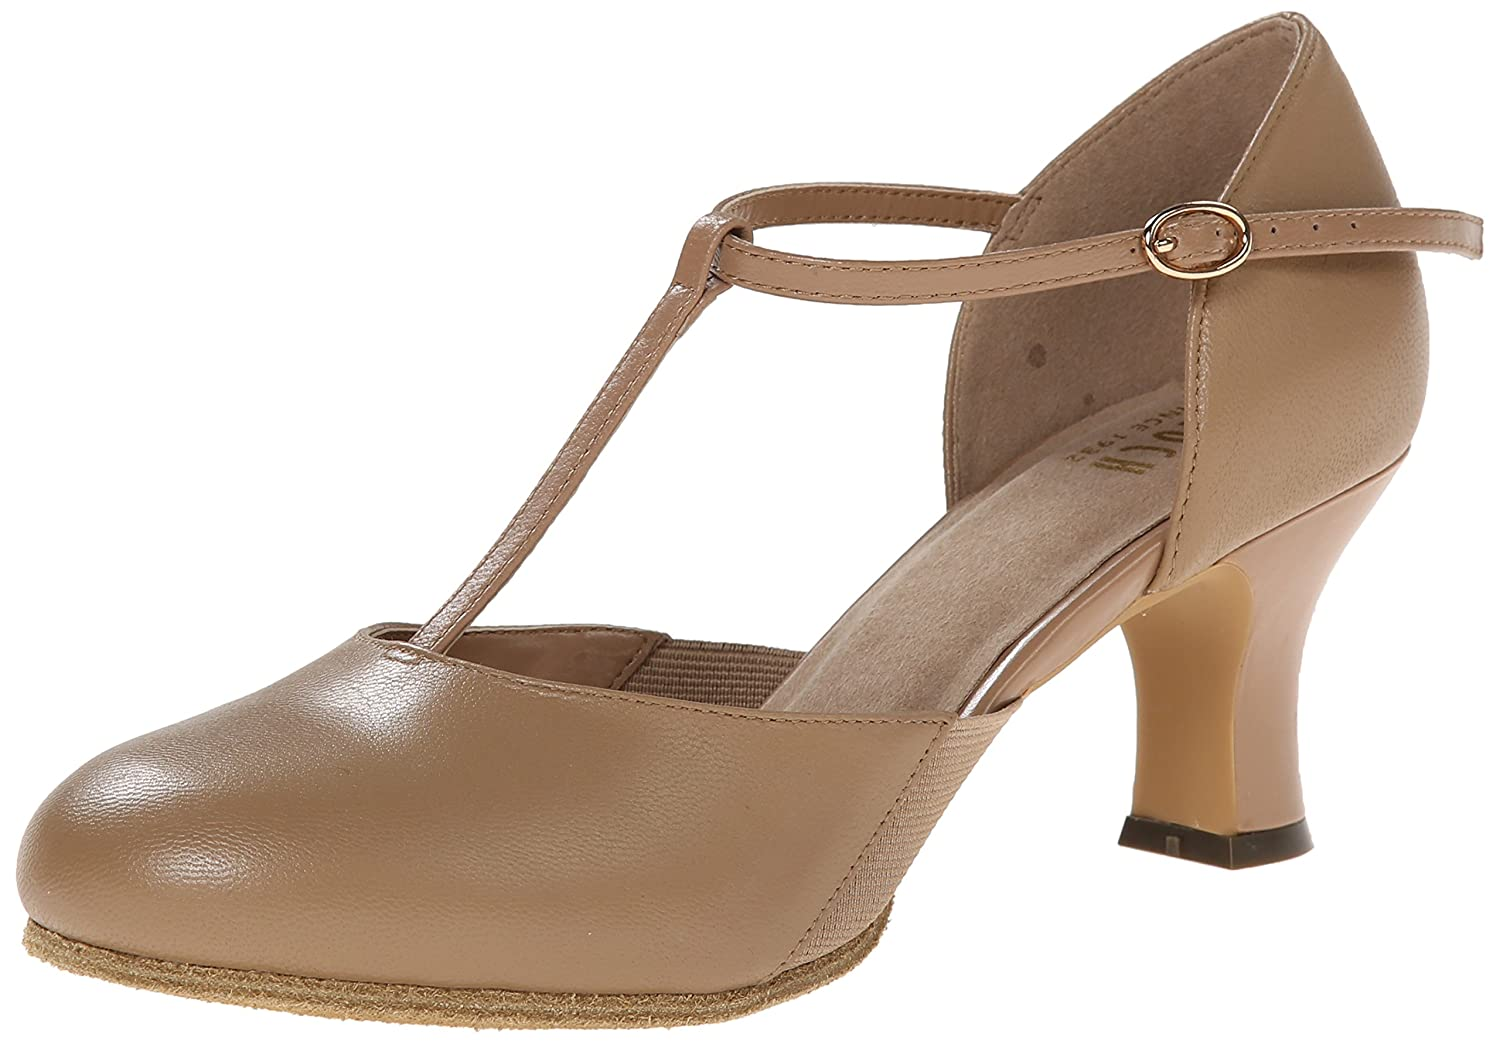 Bloch Dance Women's Split Flex Character Shoe B0041HZ3FK 5 X(Medium) US|Tan